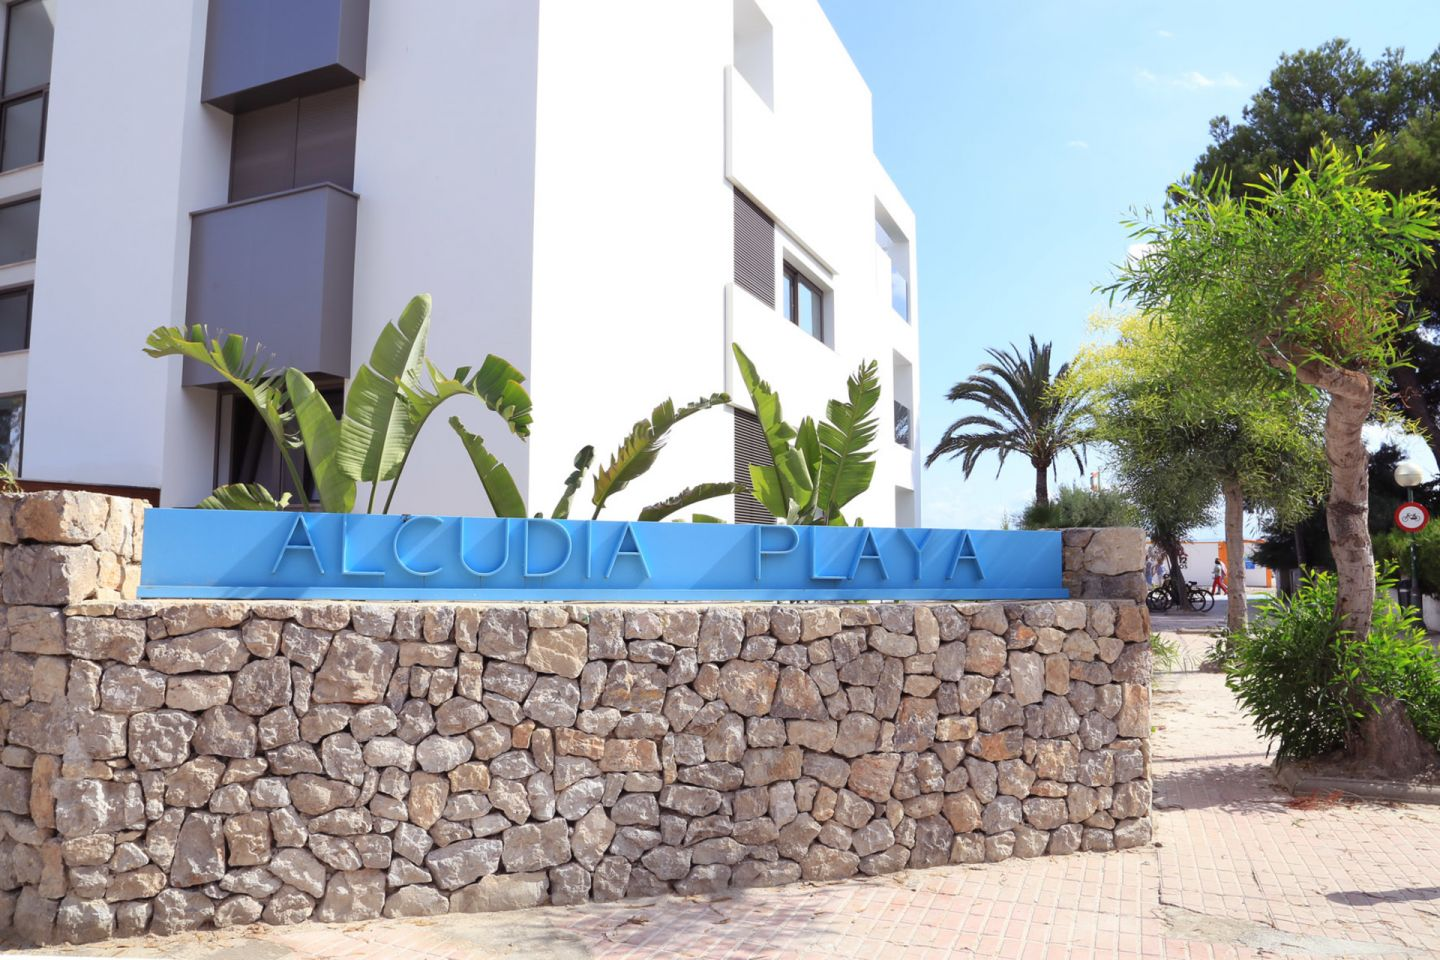 3 Bed Apartment for sale in ALCUDIA 6